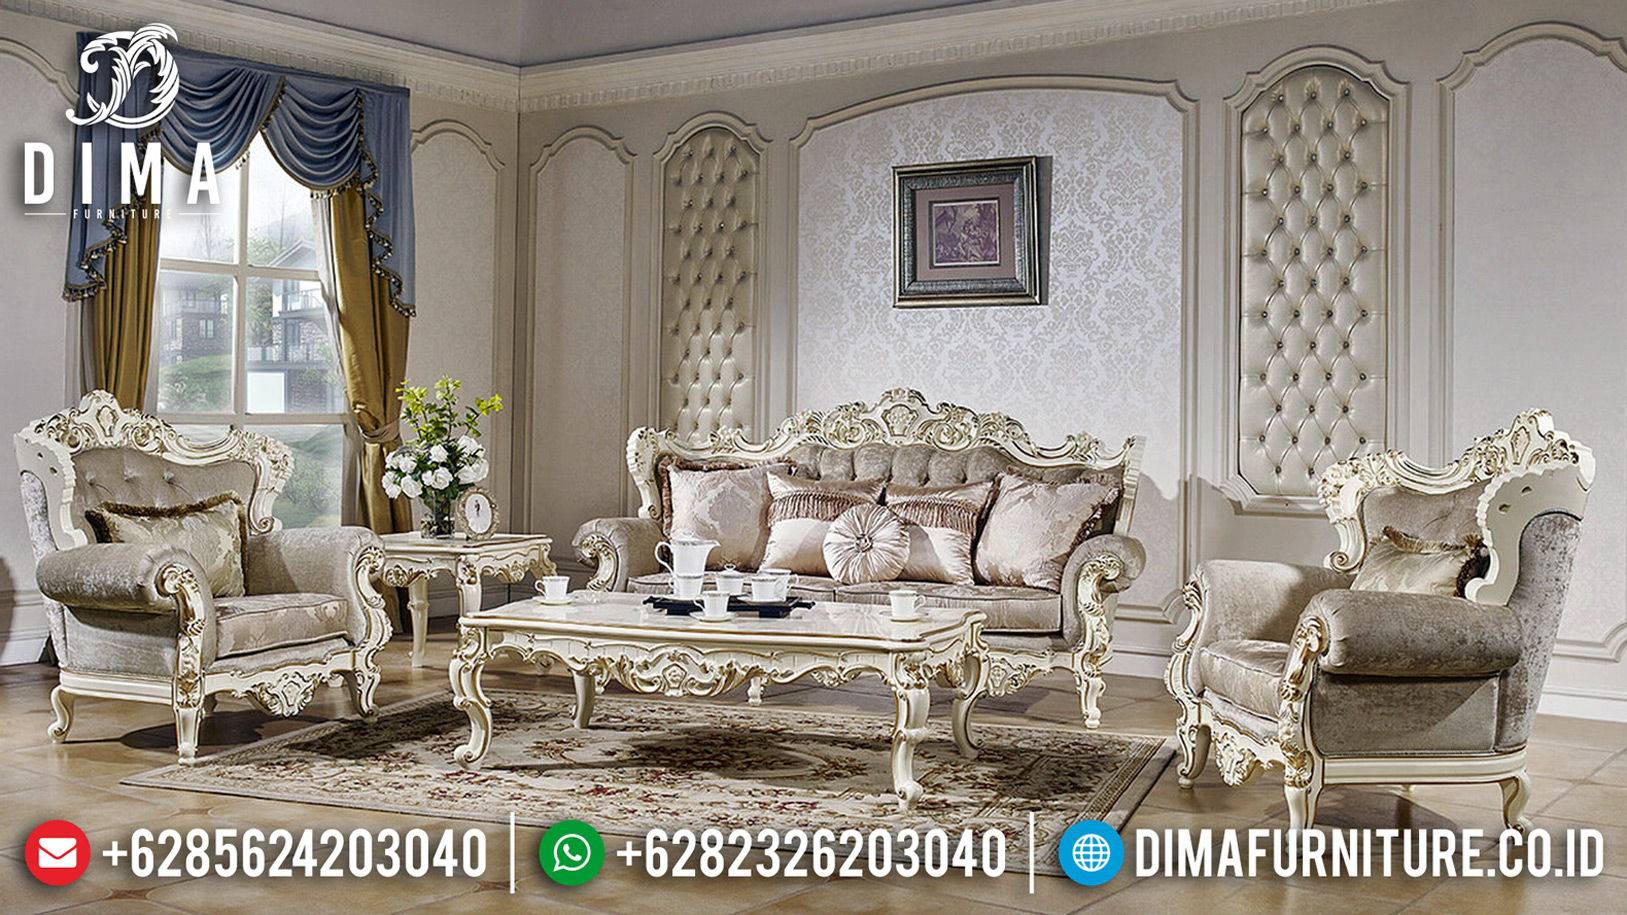 New Model Set Sofa Tamu Mewah Golden Relief Design Interior Luxury Inspiration BT-0628